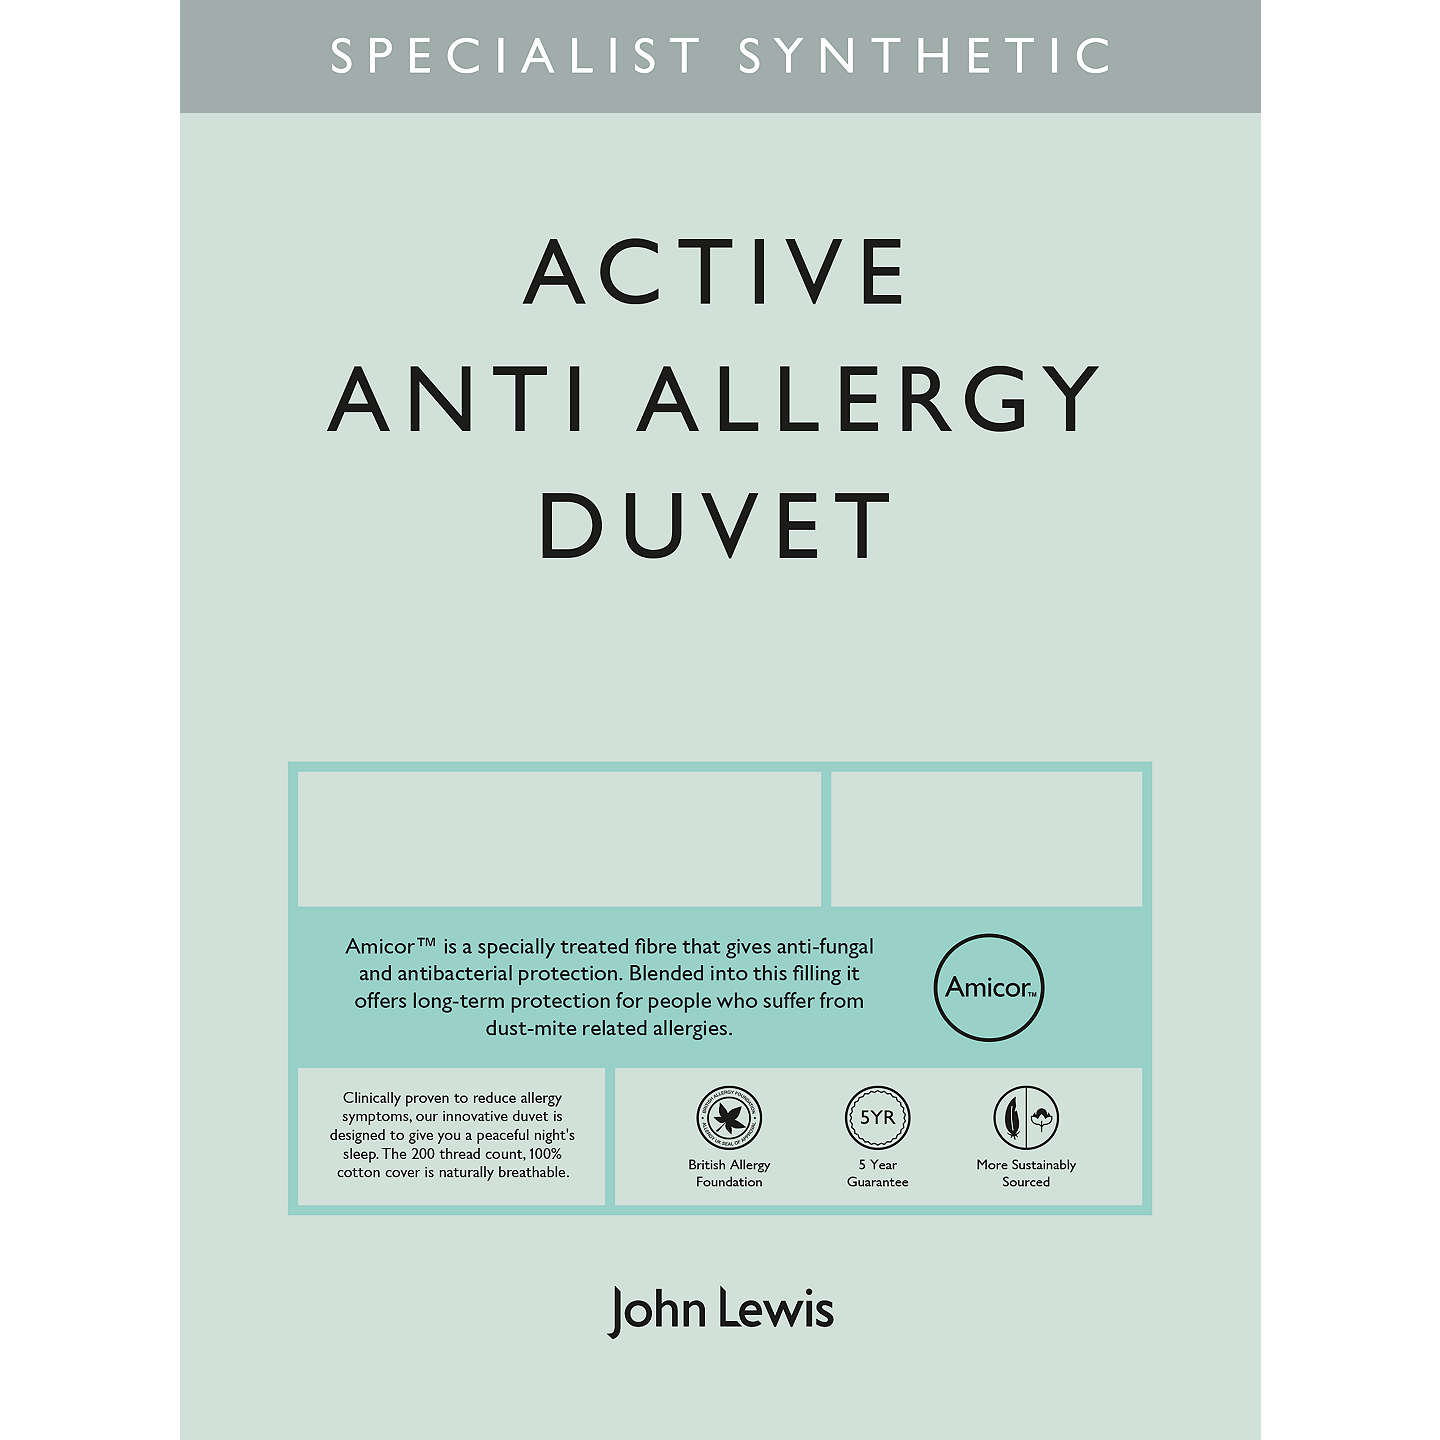 BuyJohn Lewis Specialist Synthetic Active Anti Allergy Duvet, 4.5 Tog, Super King Online at johnlewis.com